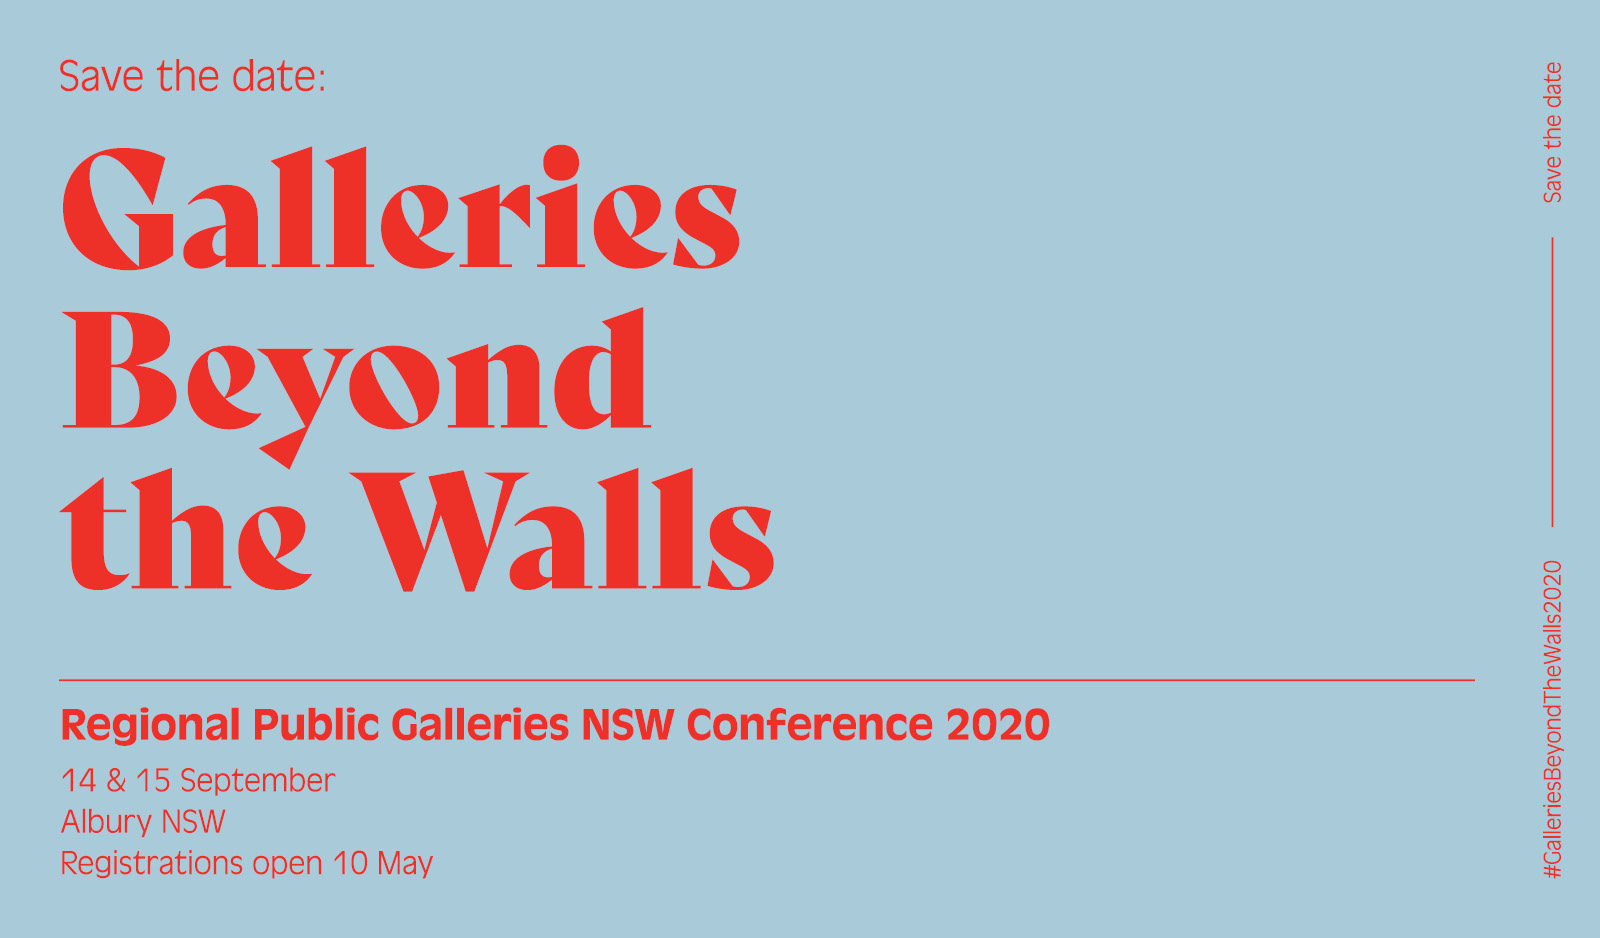 Regional Public Galleries NSW Conference 2020